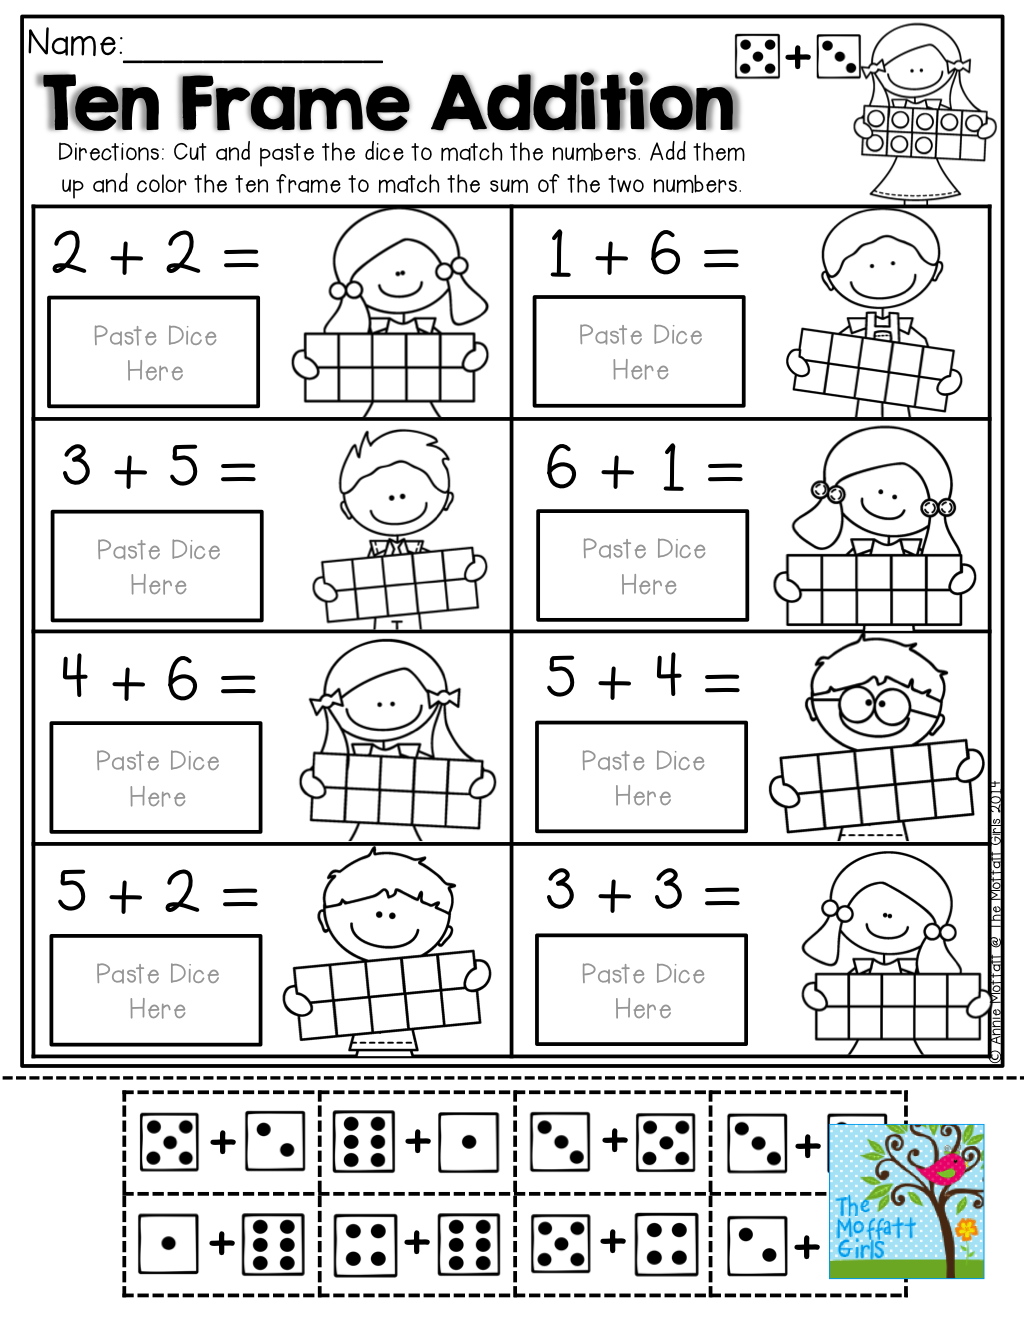 Ten Frame Addition With Dominos Addition Facts And Ten Frames Fun And Super Effective Tons Of